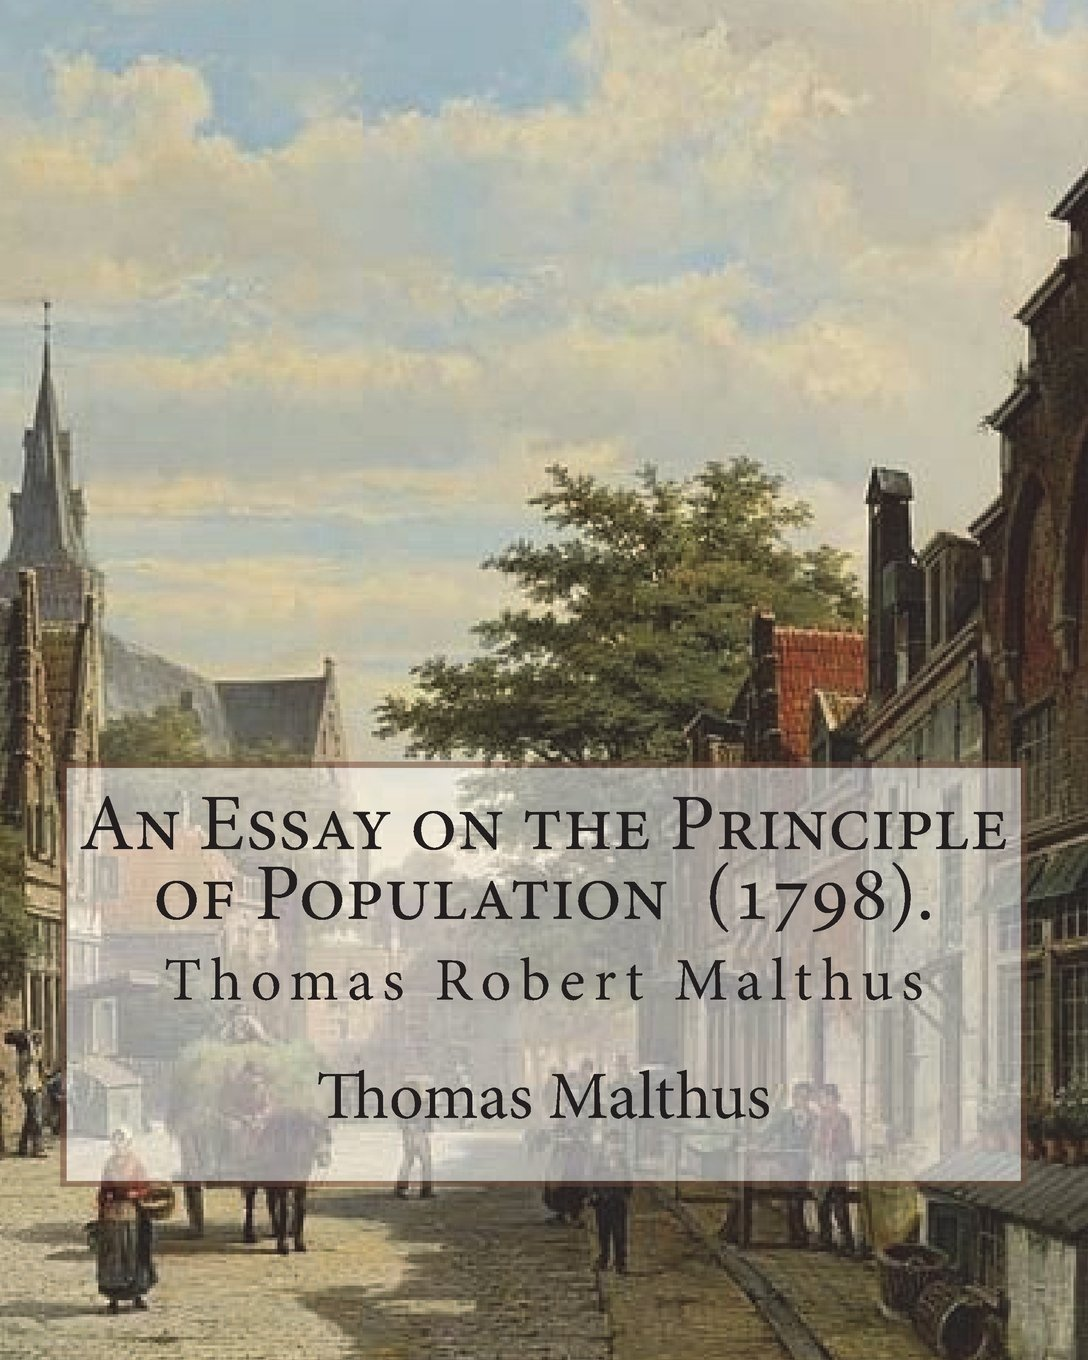 018 Essay On The Principle Of Population 71giypnbhsl Singular Thomas Malthus Sparknotes Advocated Ap Euro Full